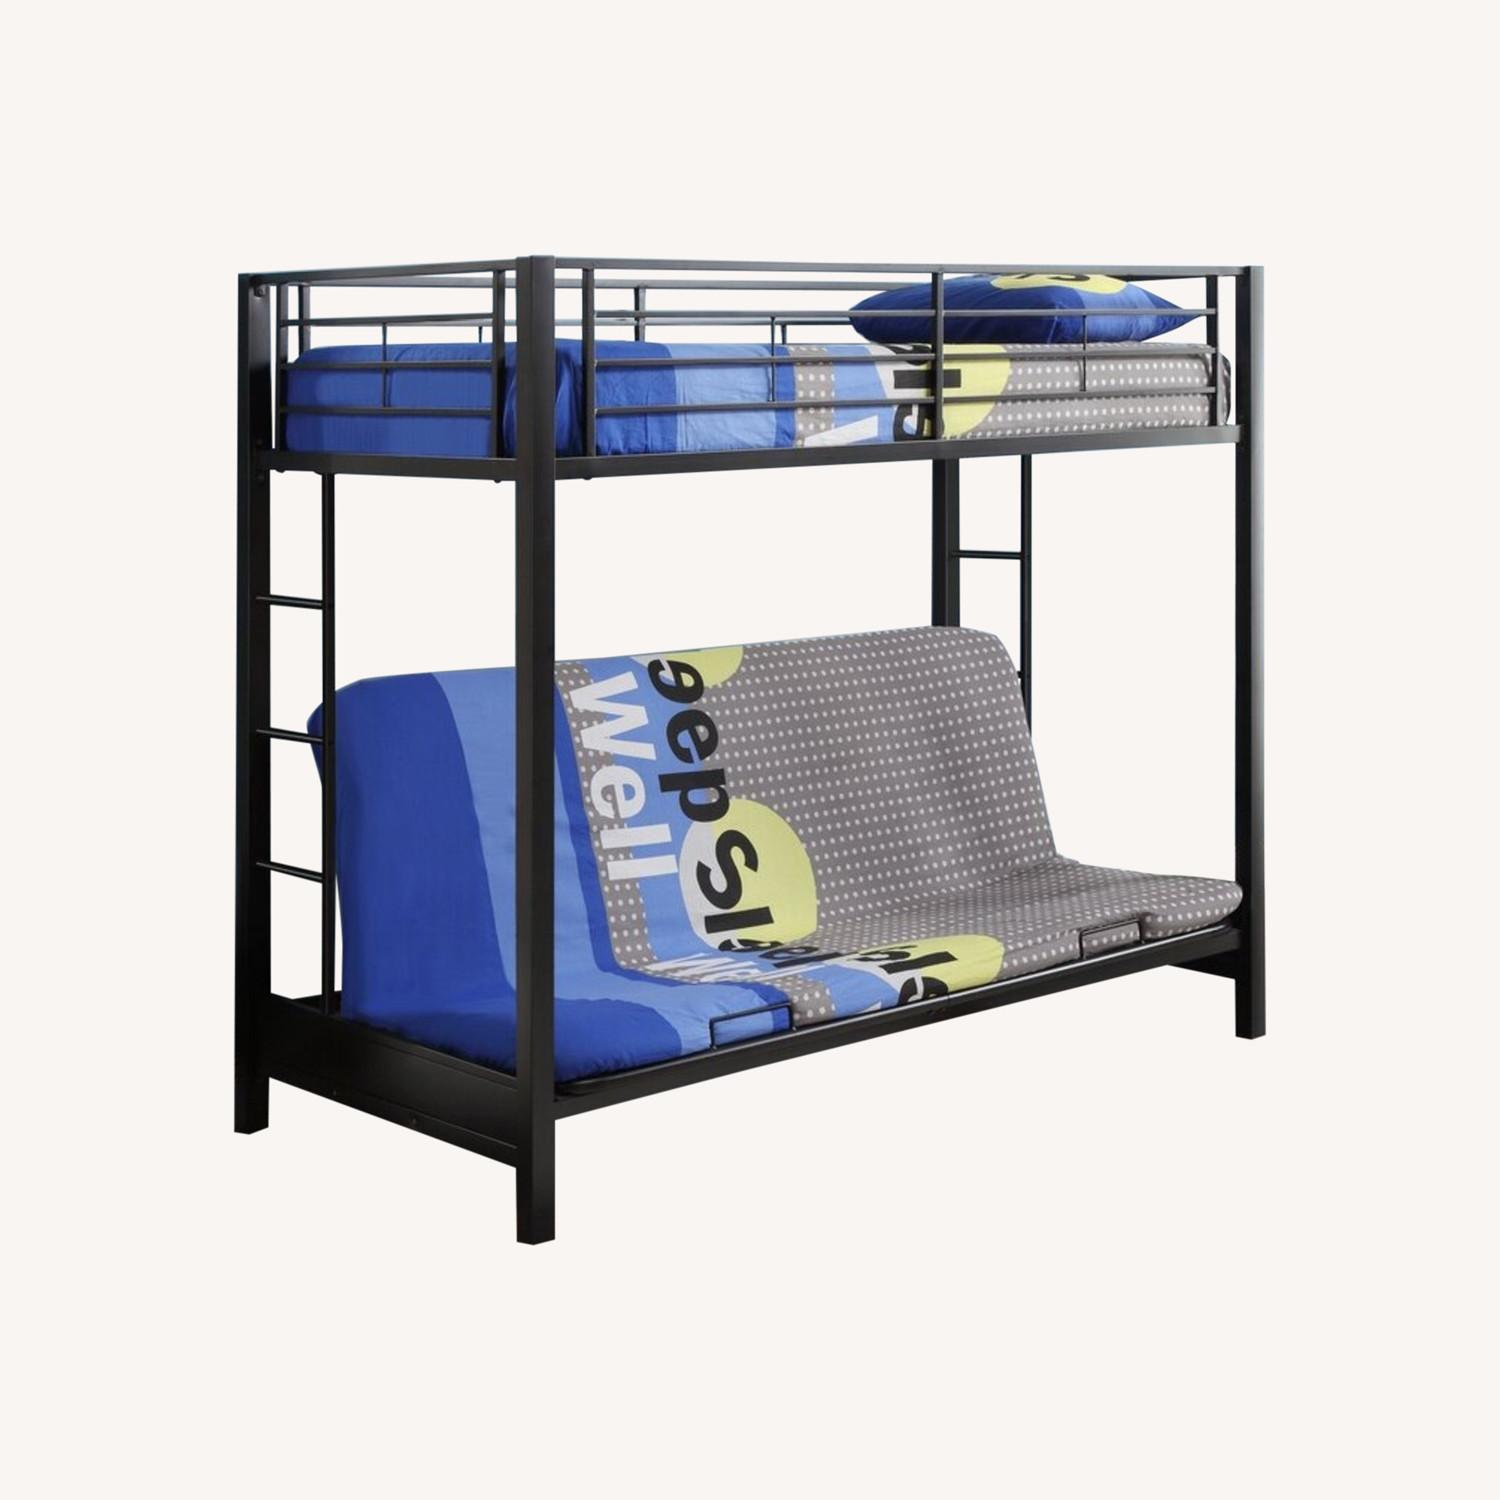 Wayfair Exmore Twin Over Full Metal (with Futon) Bunk Bed - image-0